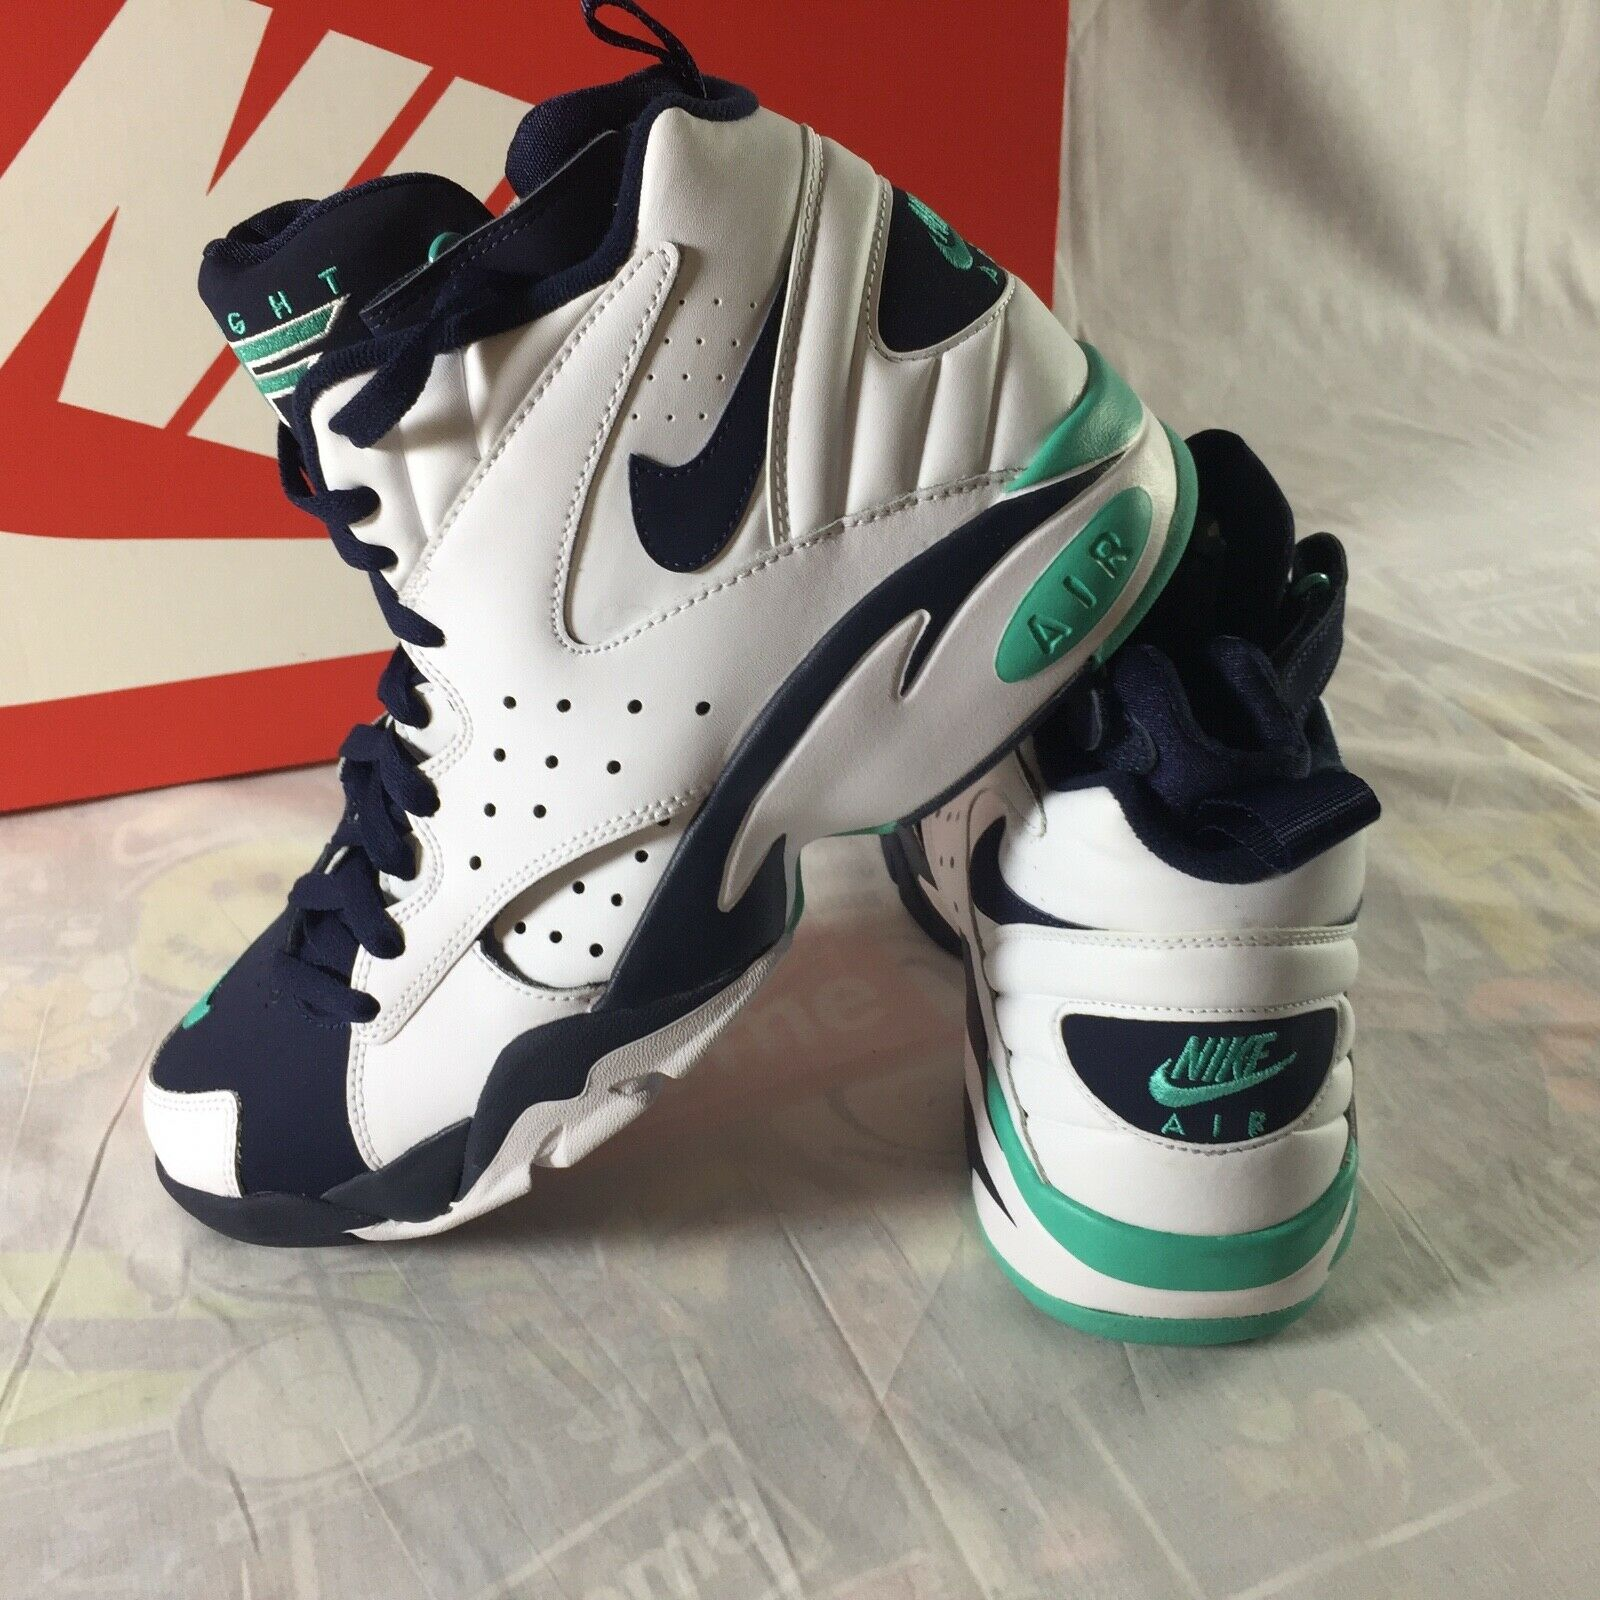 Nike Air Maestro II LTD LTD LTD Men's Size 10.5 Basketball shoes Jade White Obsidian NEW cf63fd